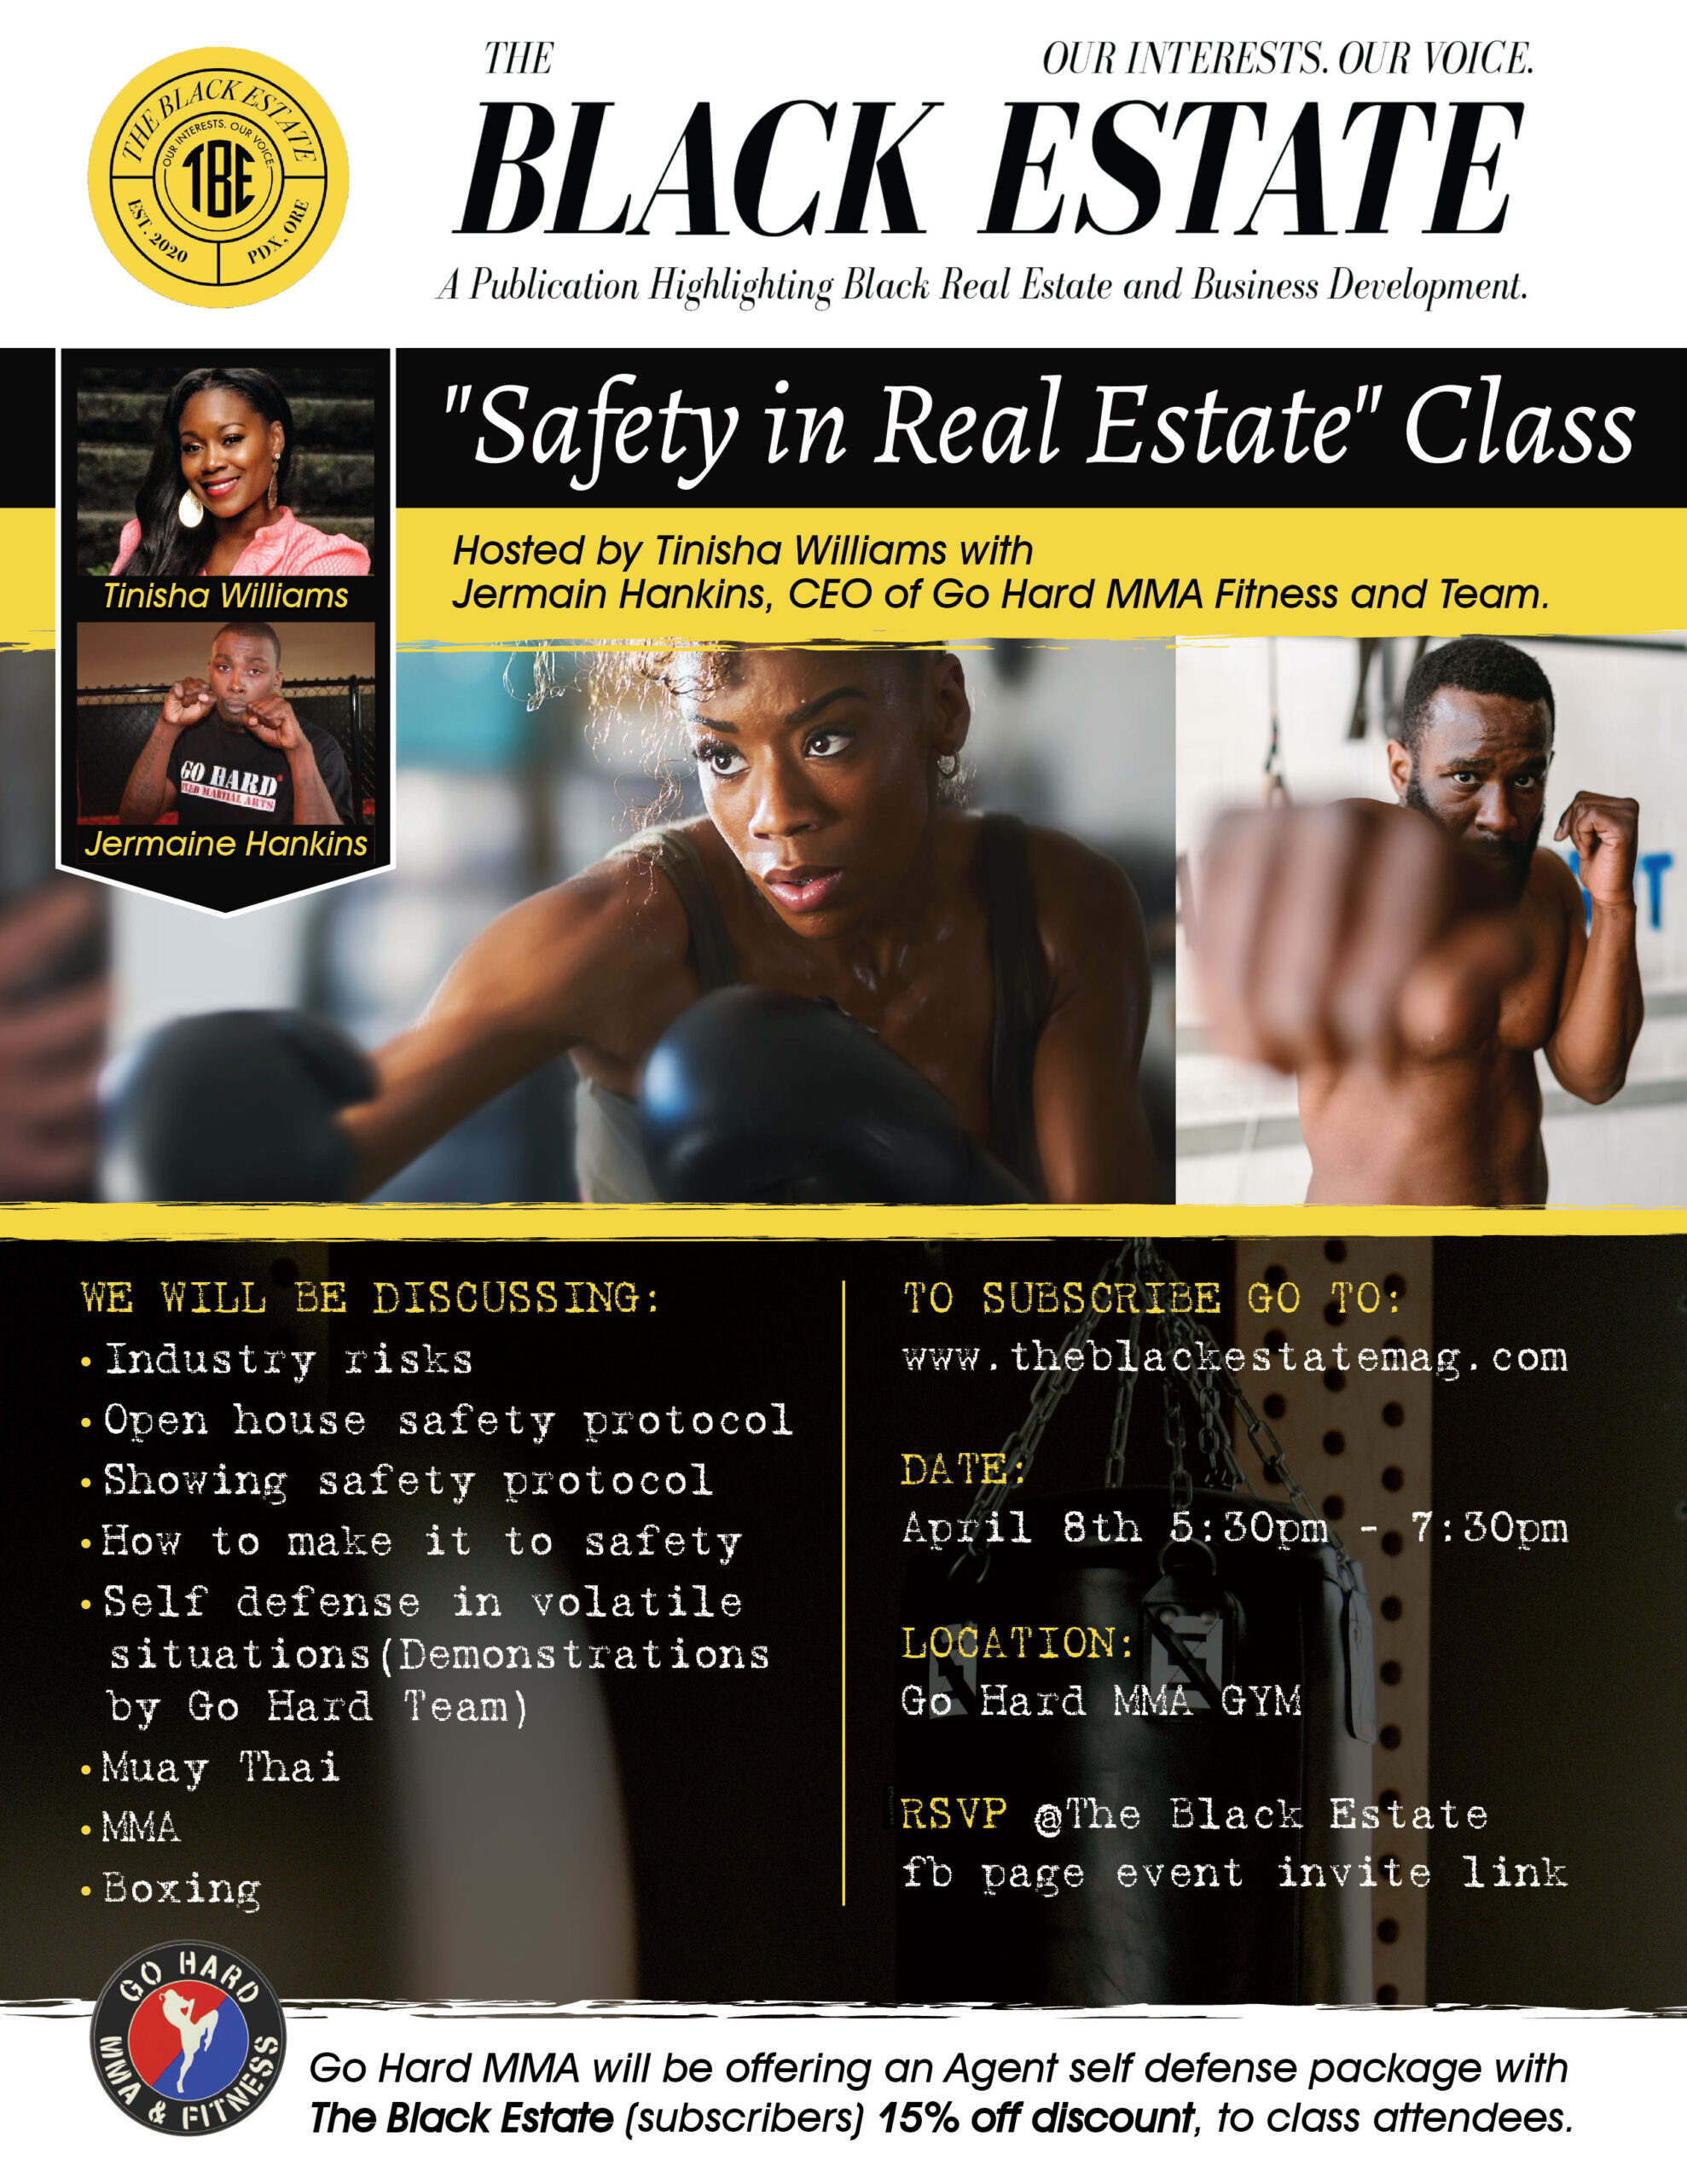 Safety in Real Estate Class